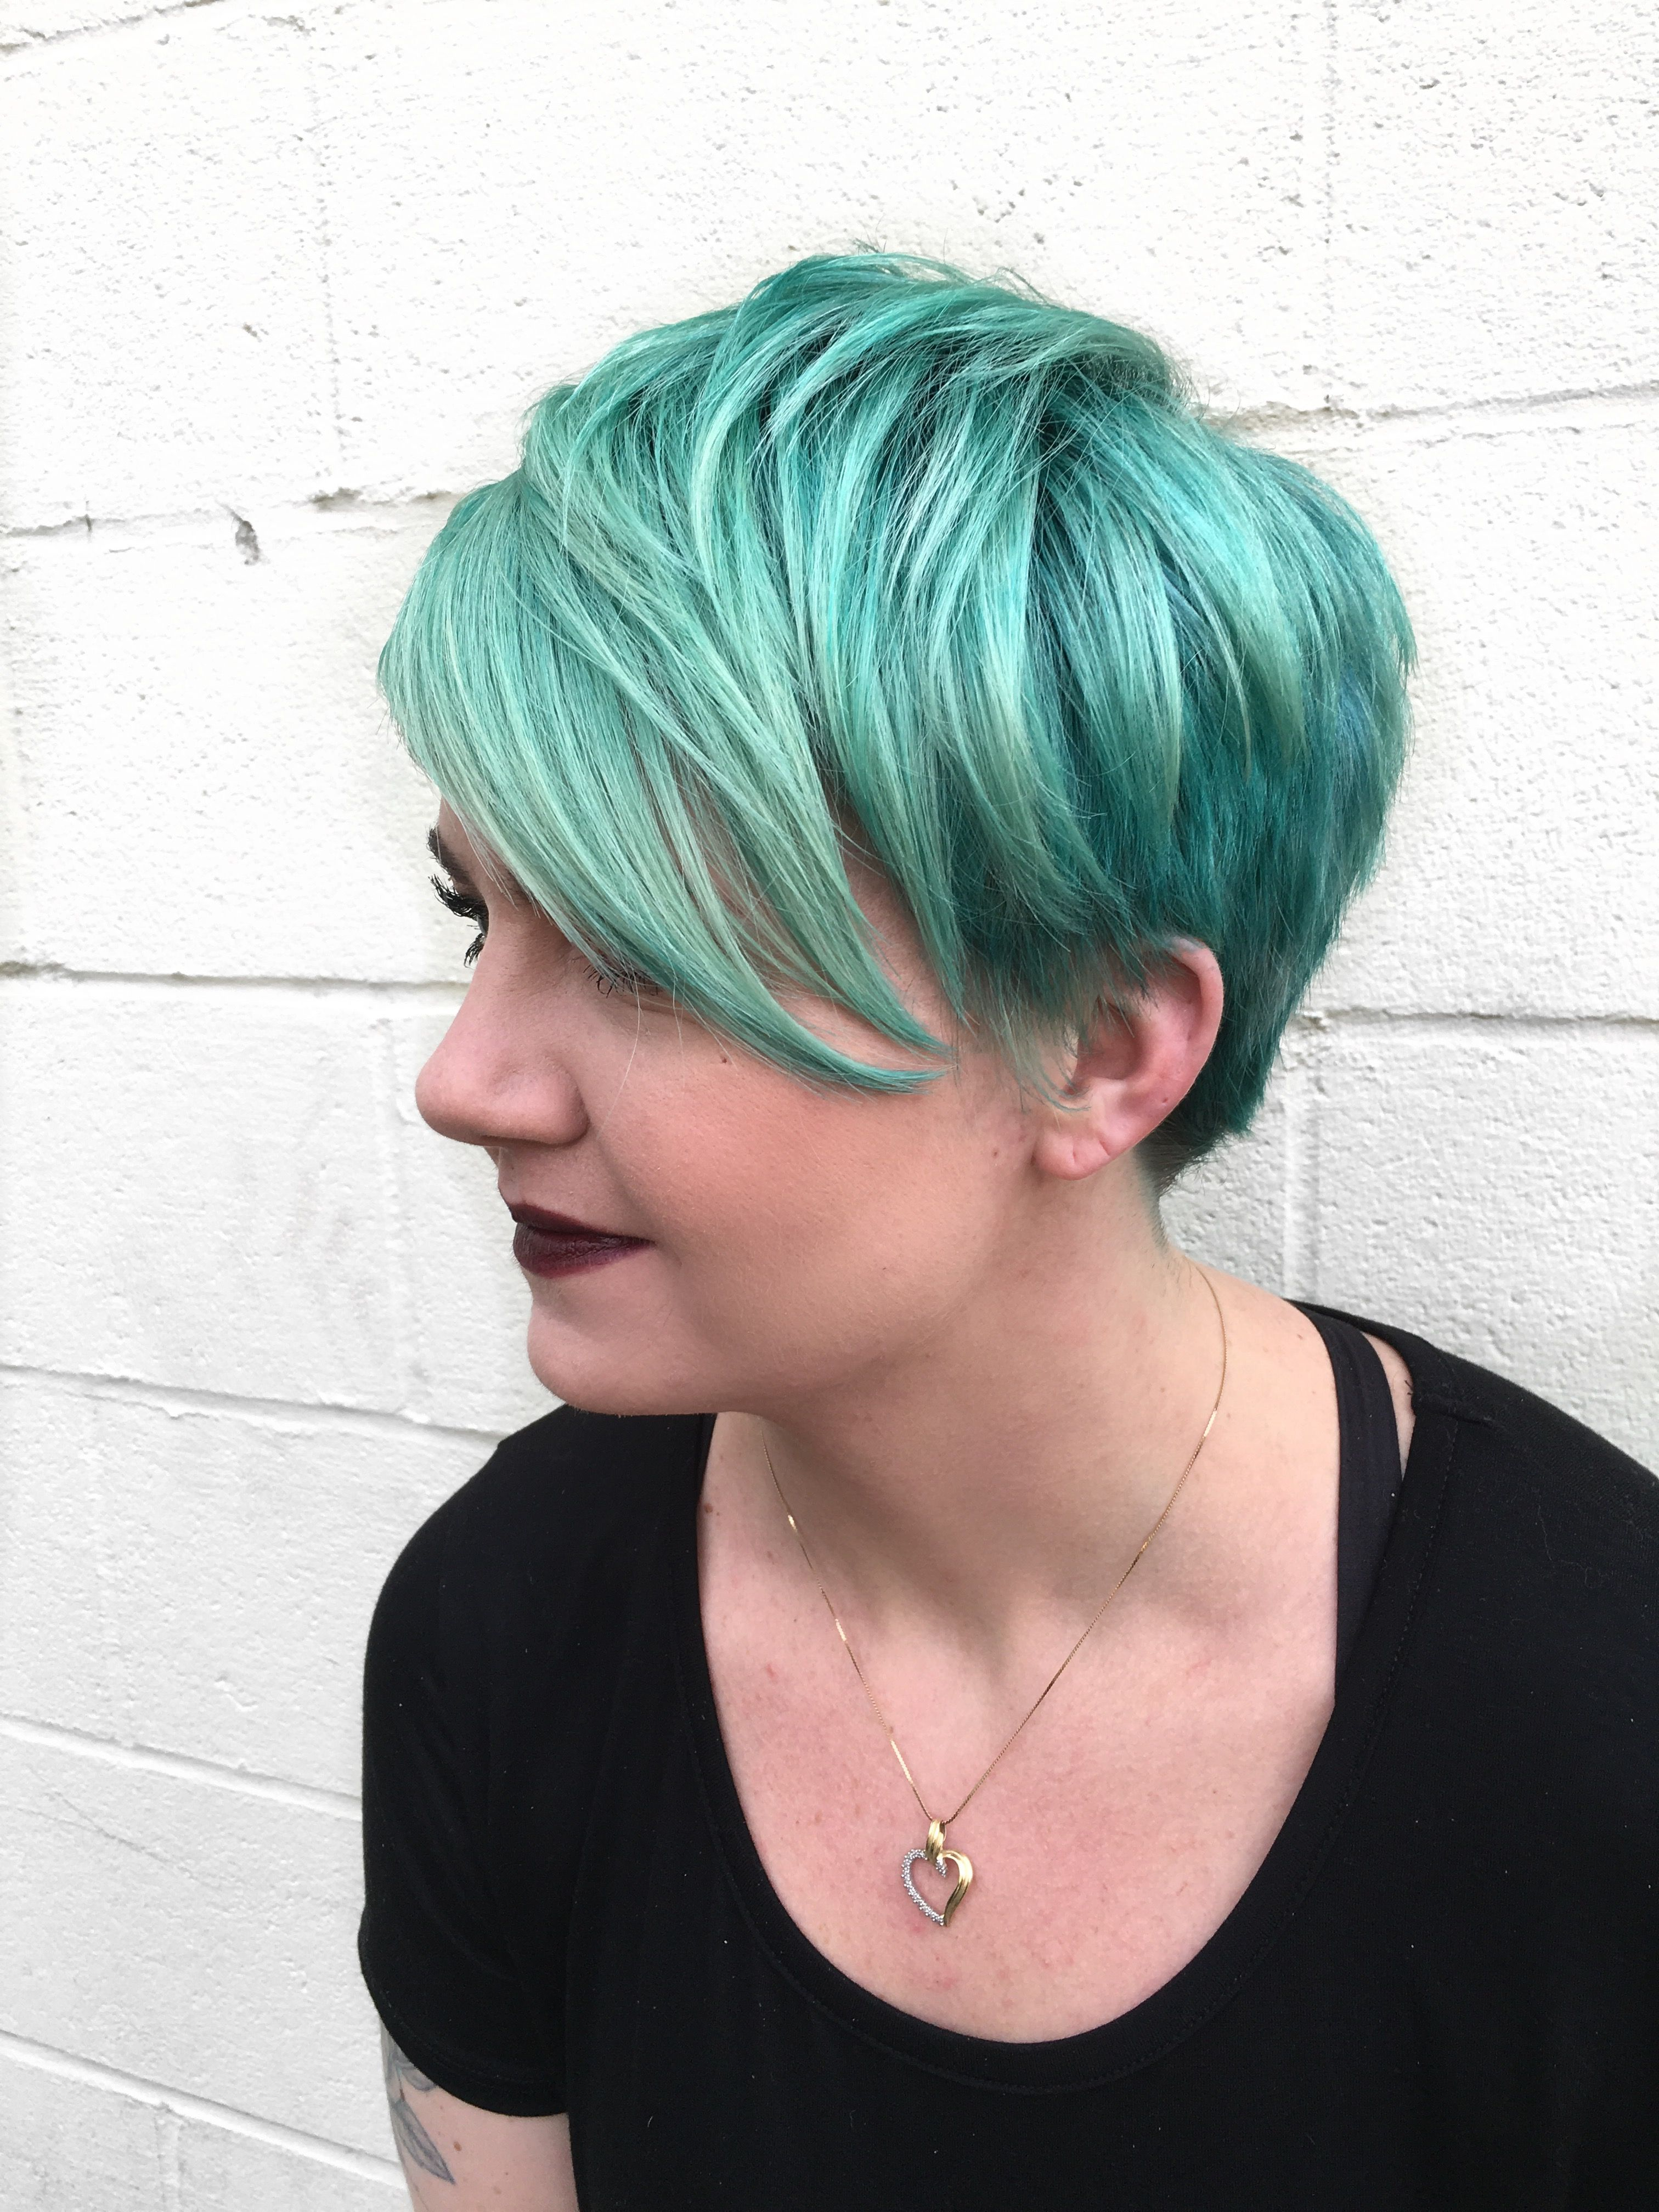 Our friends at citrus salon blew us away with this vibrant teal blue